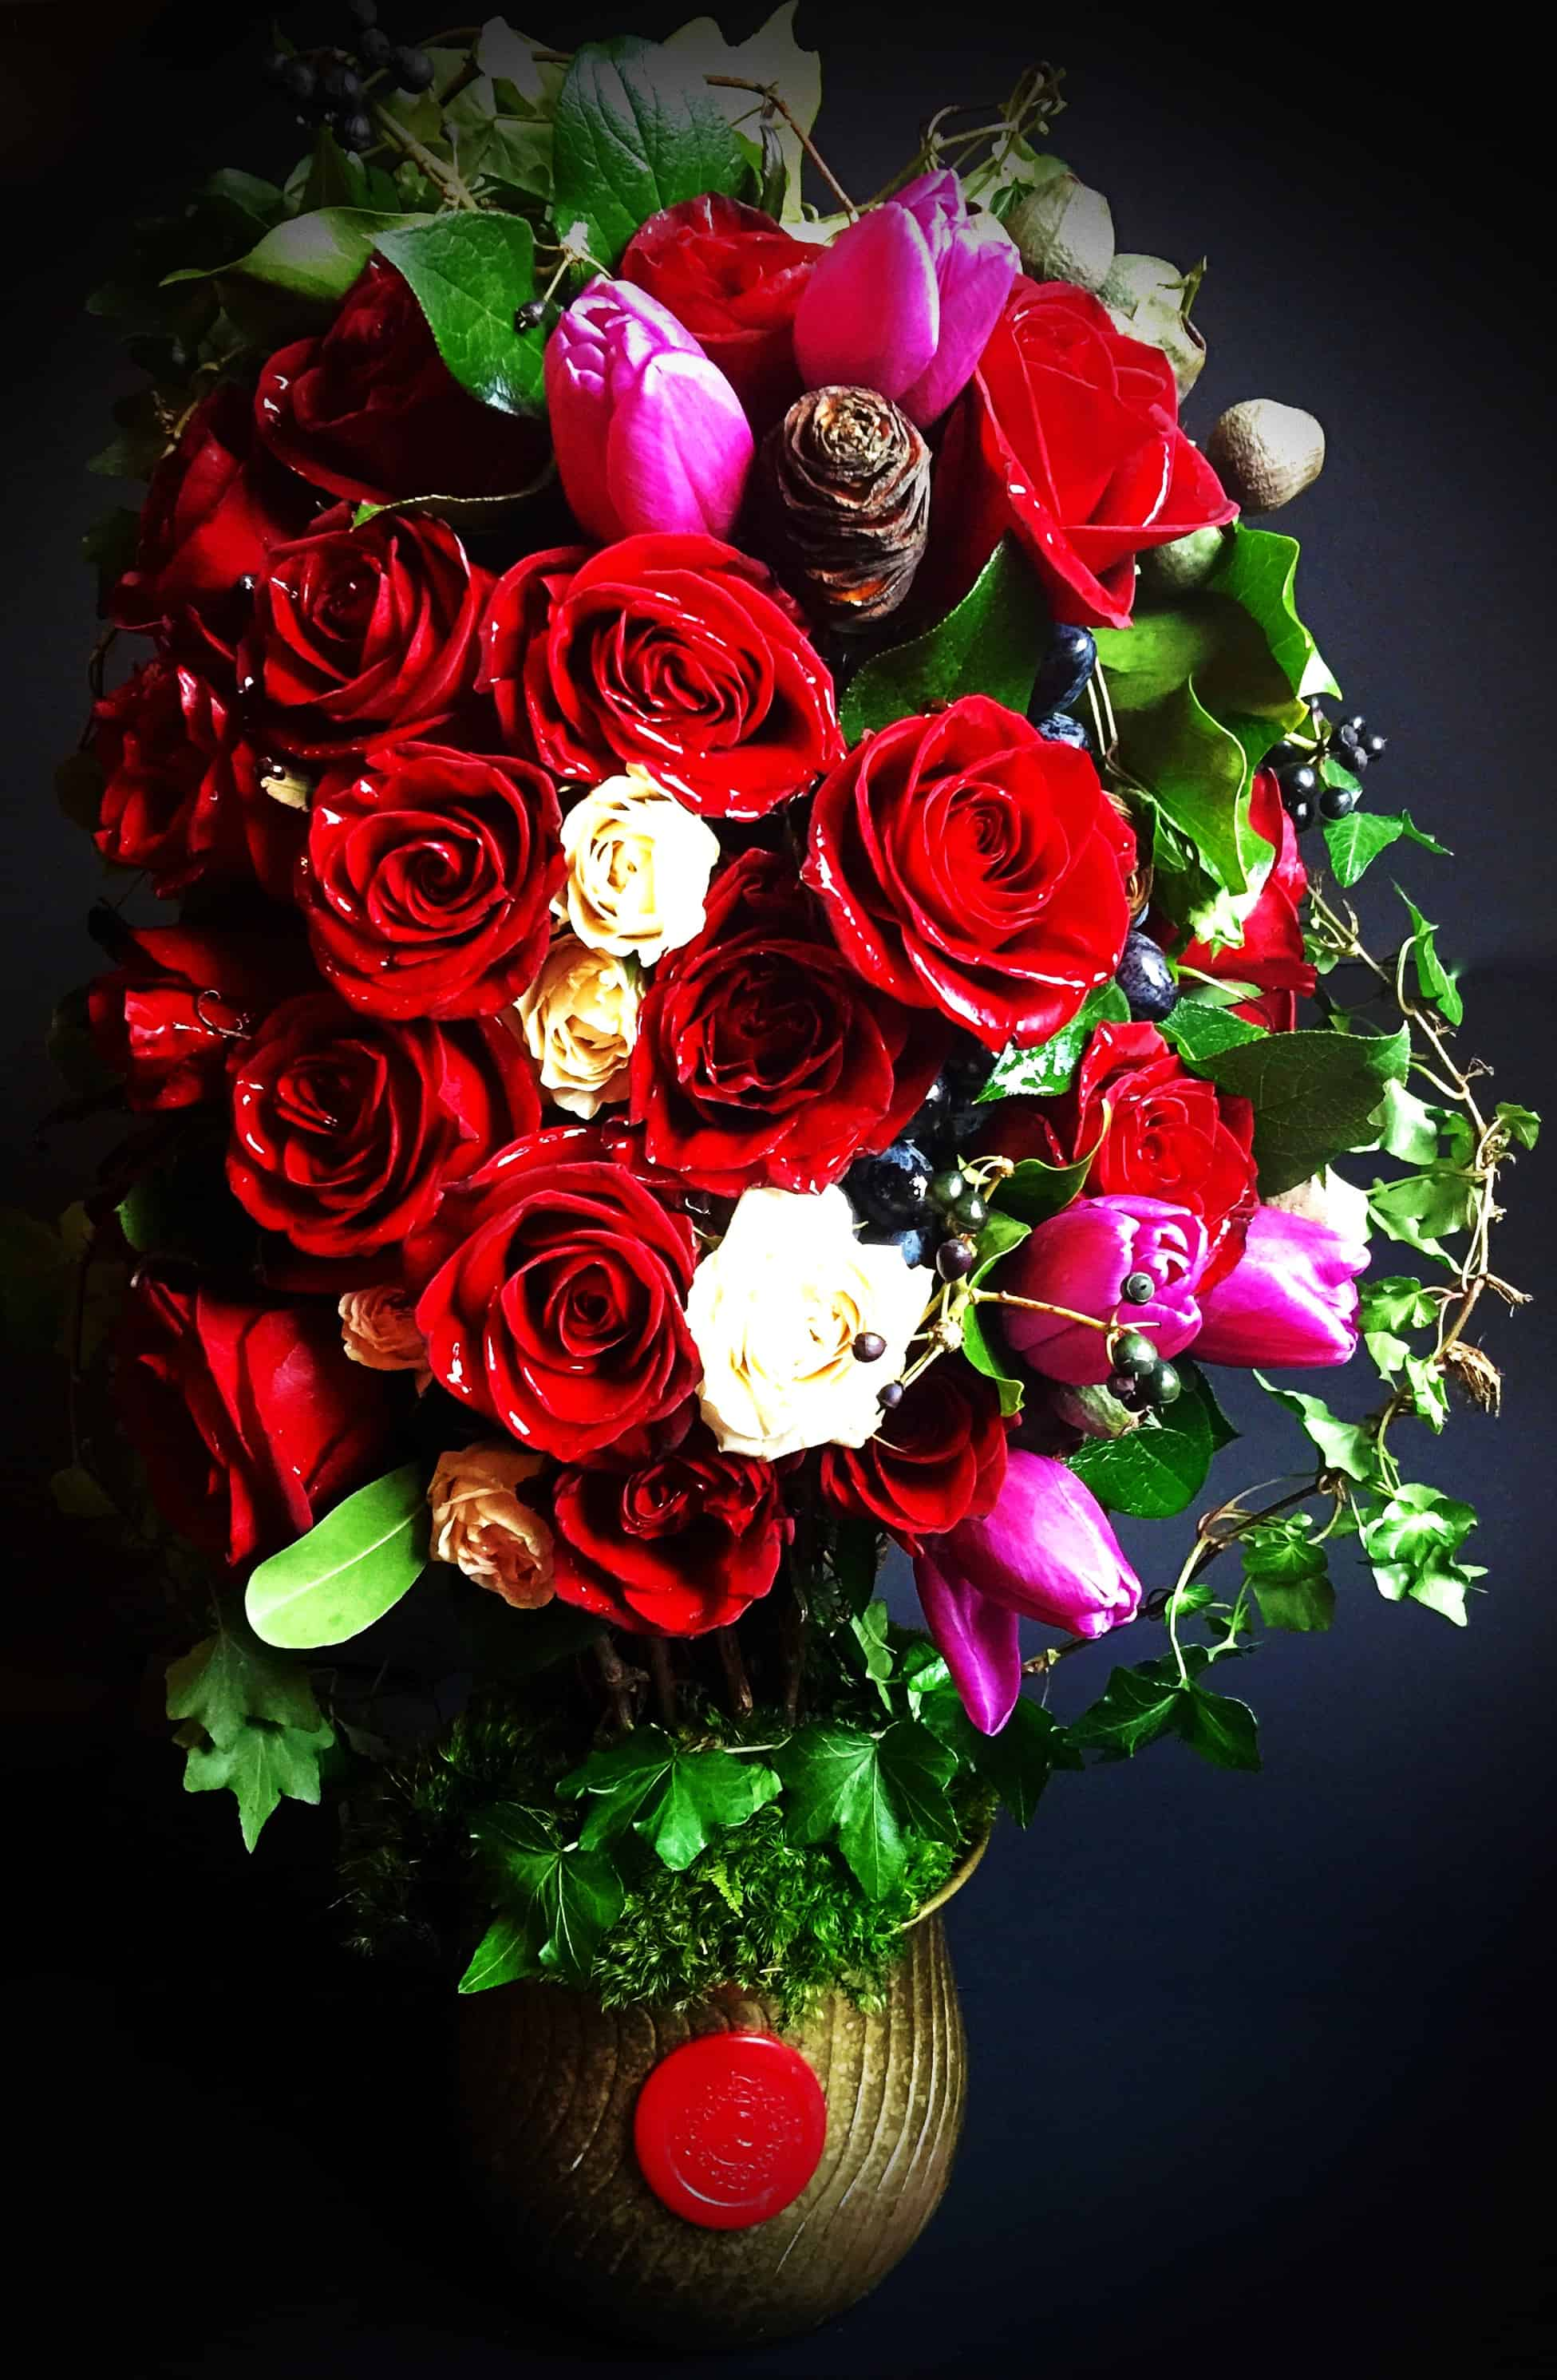 Two dozen red roses, tulips, moss, foliage and curly branches forming a topiary base